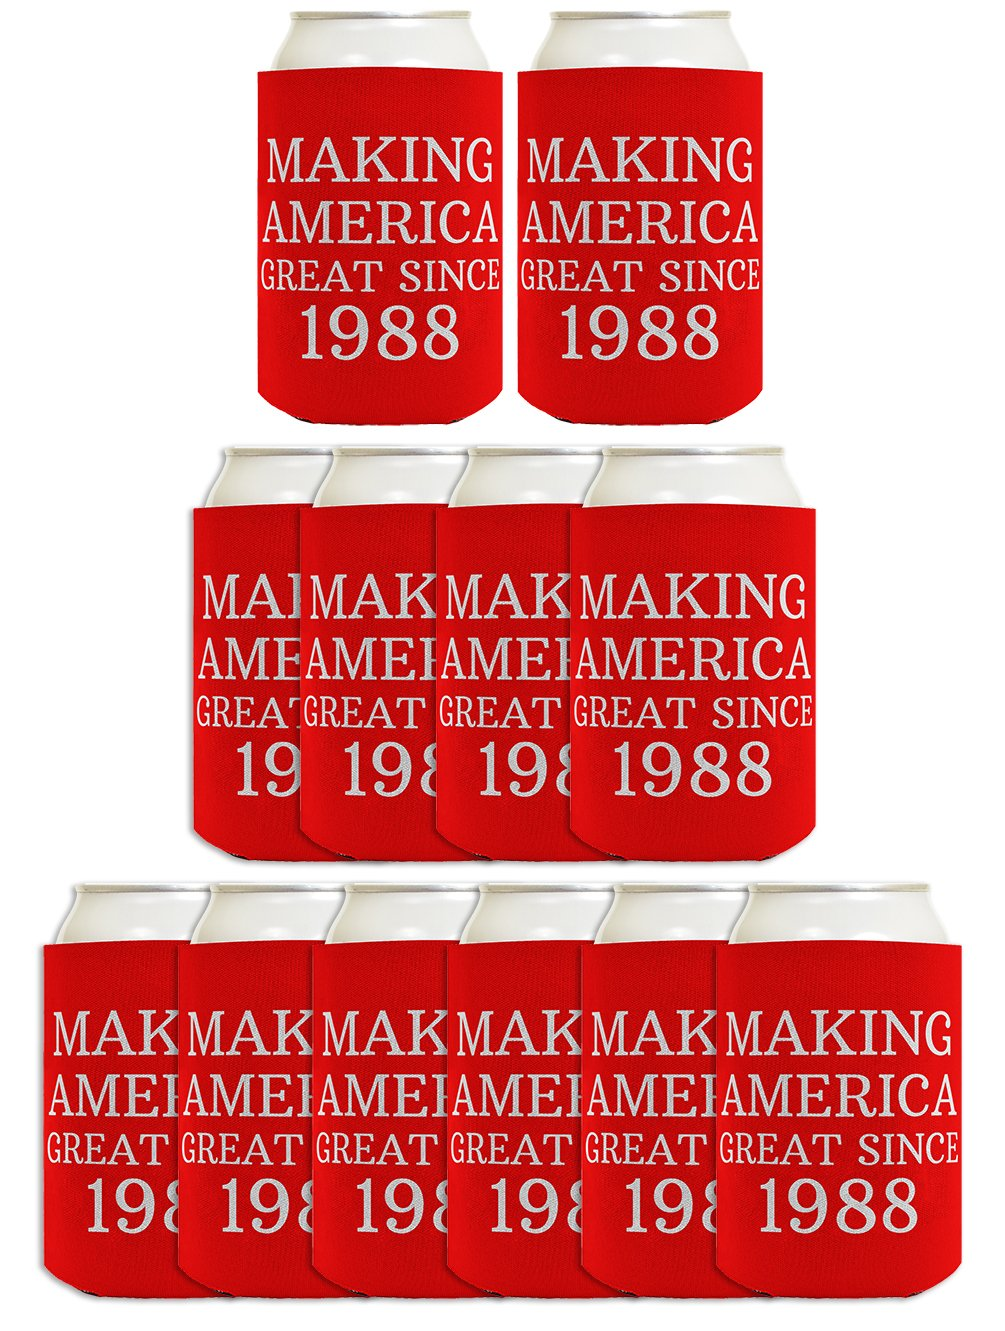 30th Birthday Gift Ideas Making America Great Since 1988 30th Birthday Decorations 30th Birthday Gifts for Men 12 Pack Can Coolie Drink Coolers Coolies Red